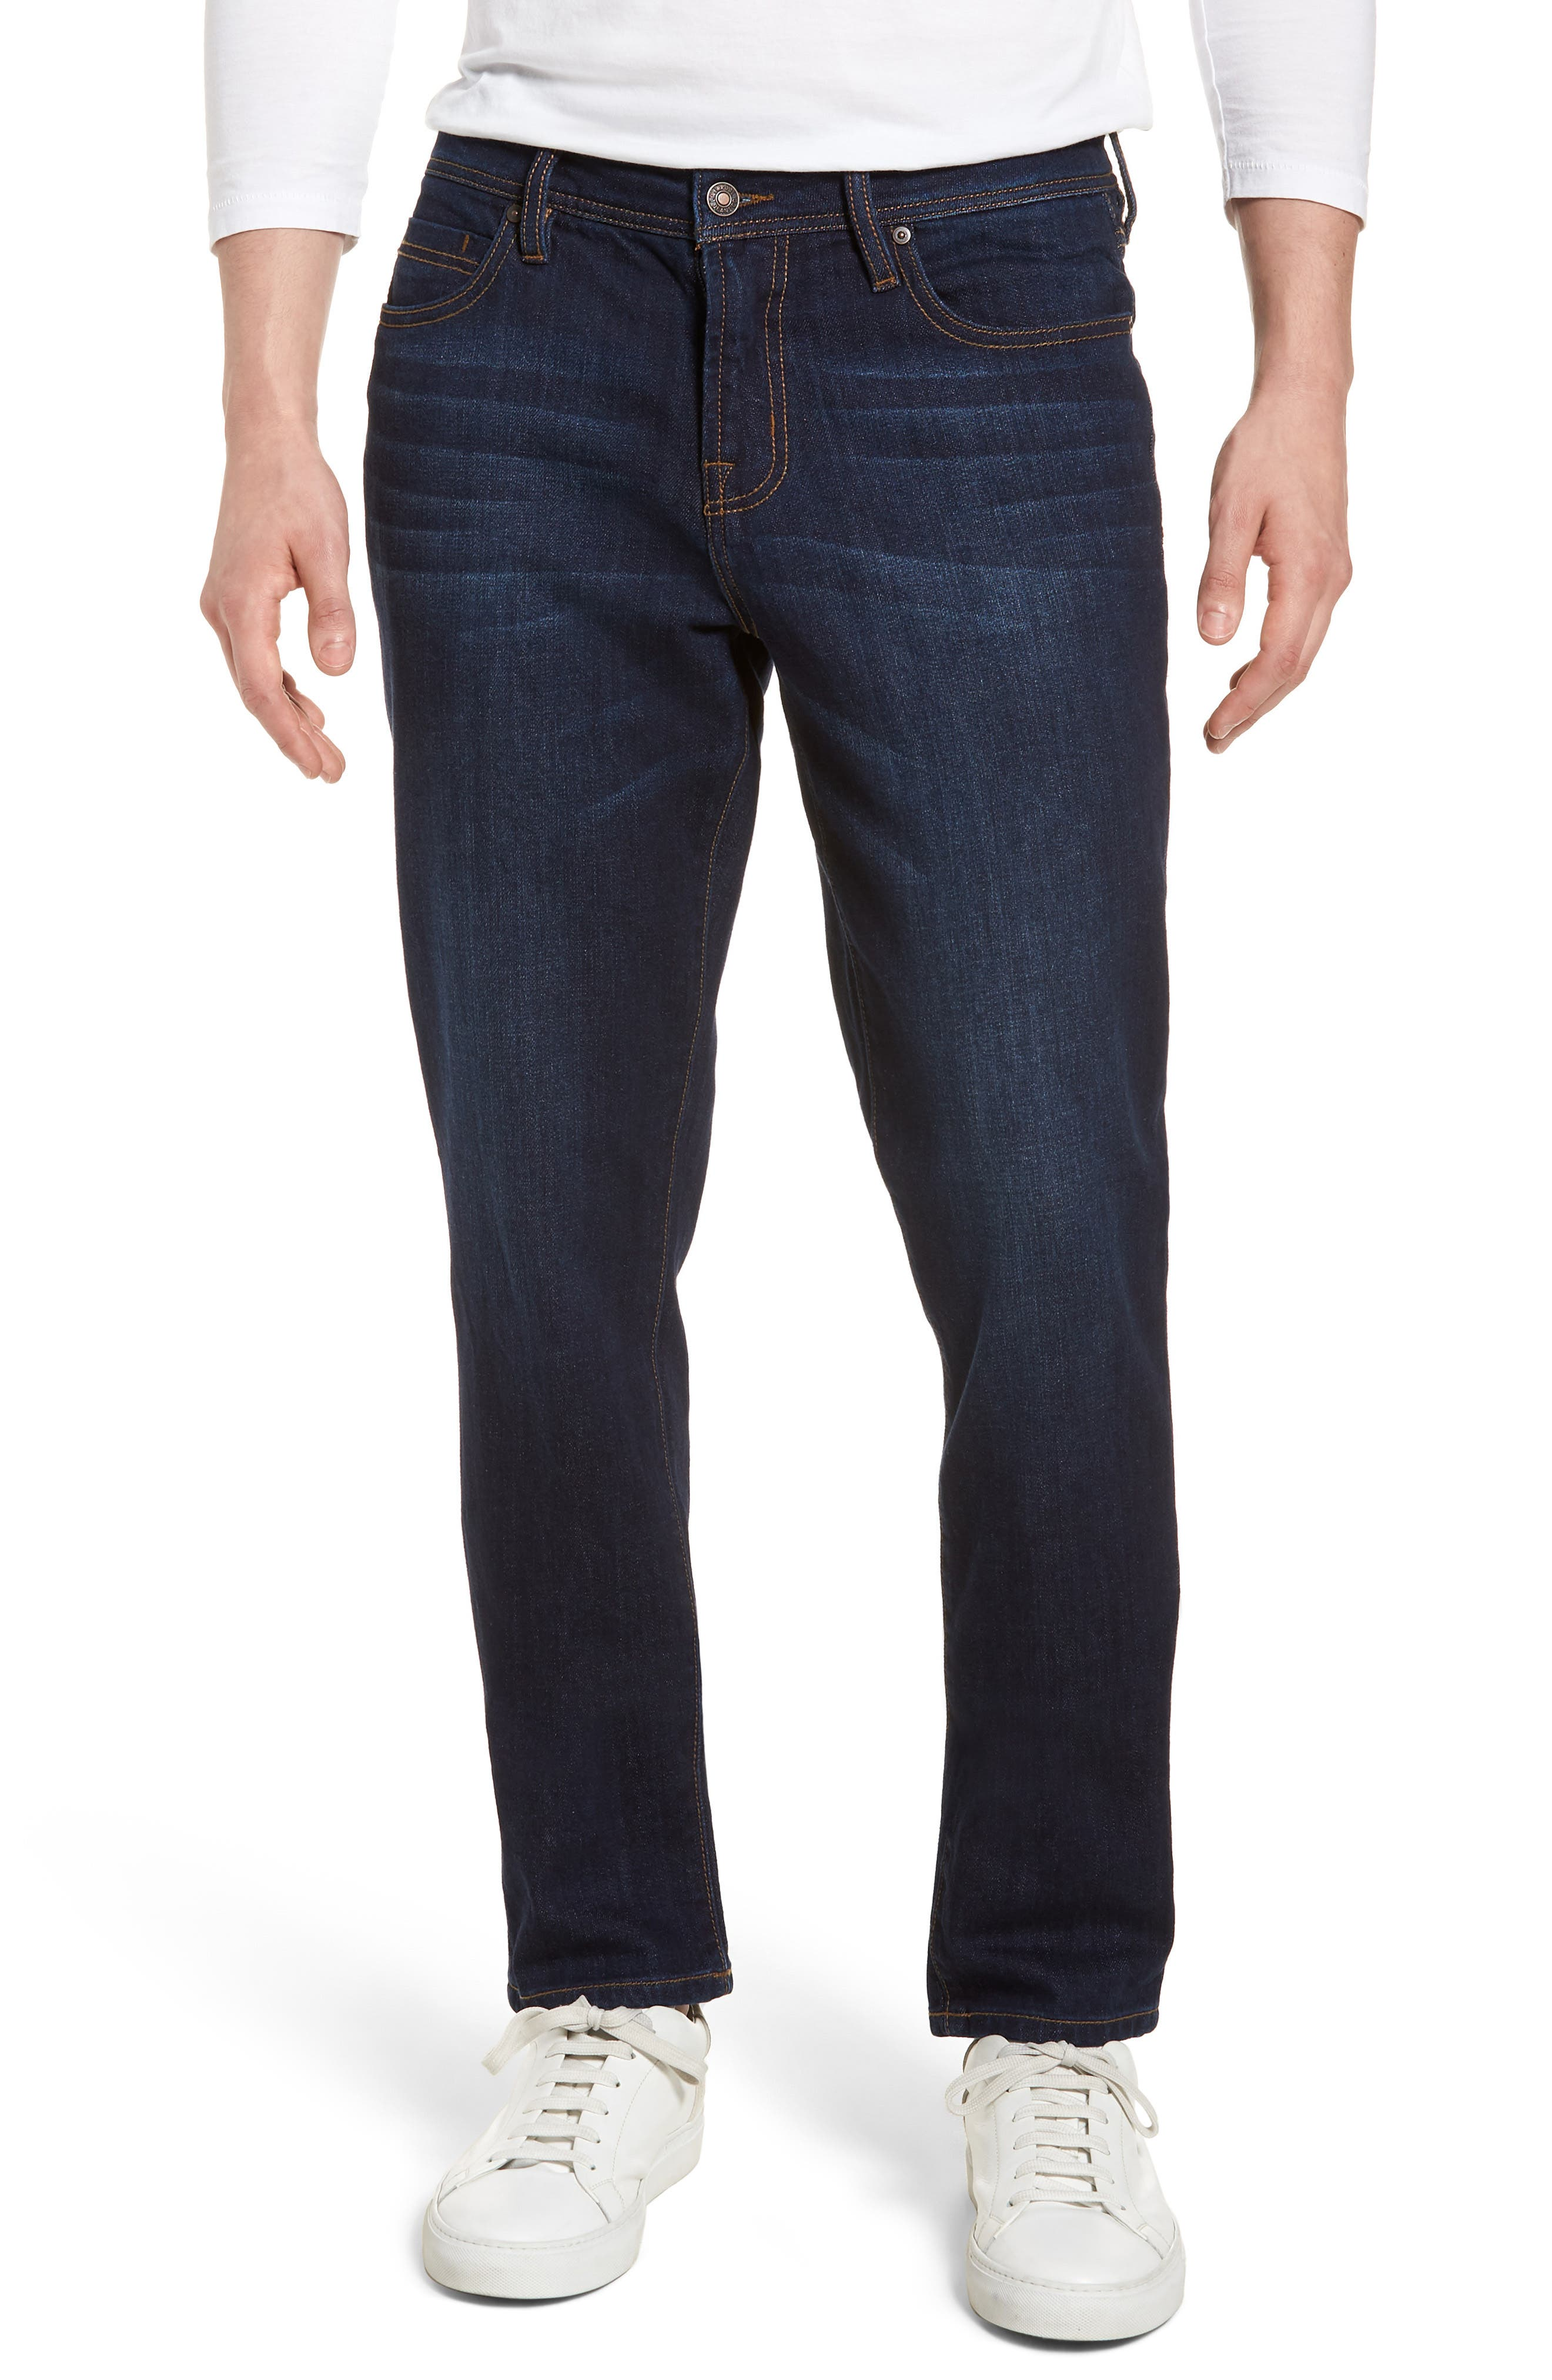 Jeans Co. Kingston Slim Straight Leg Jeans,                         Main,                         color, SAN ARDO VINTAGE DARK